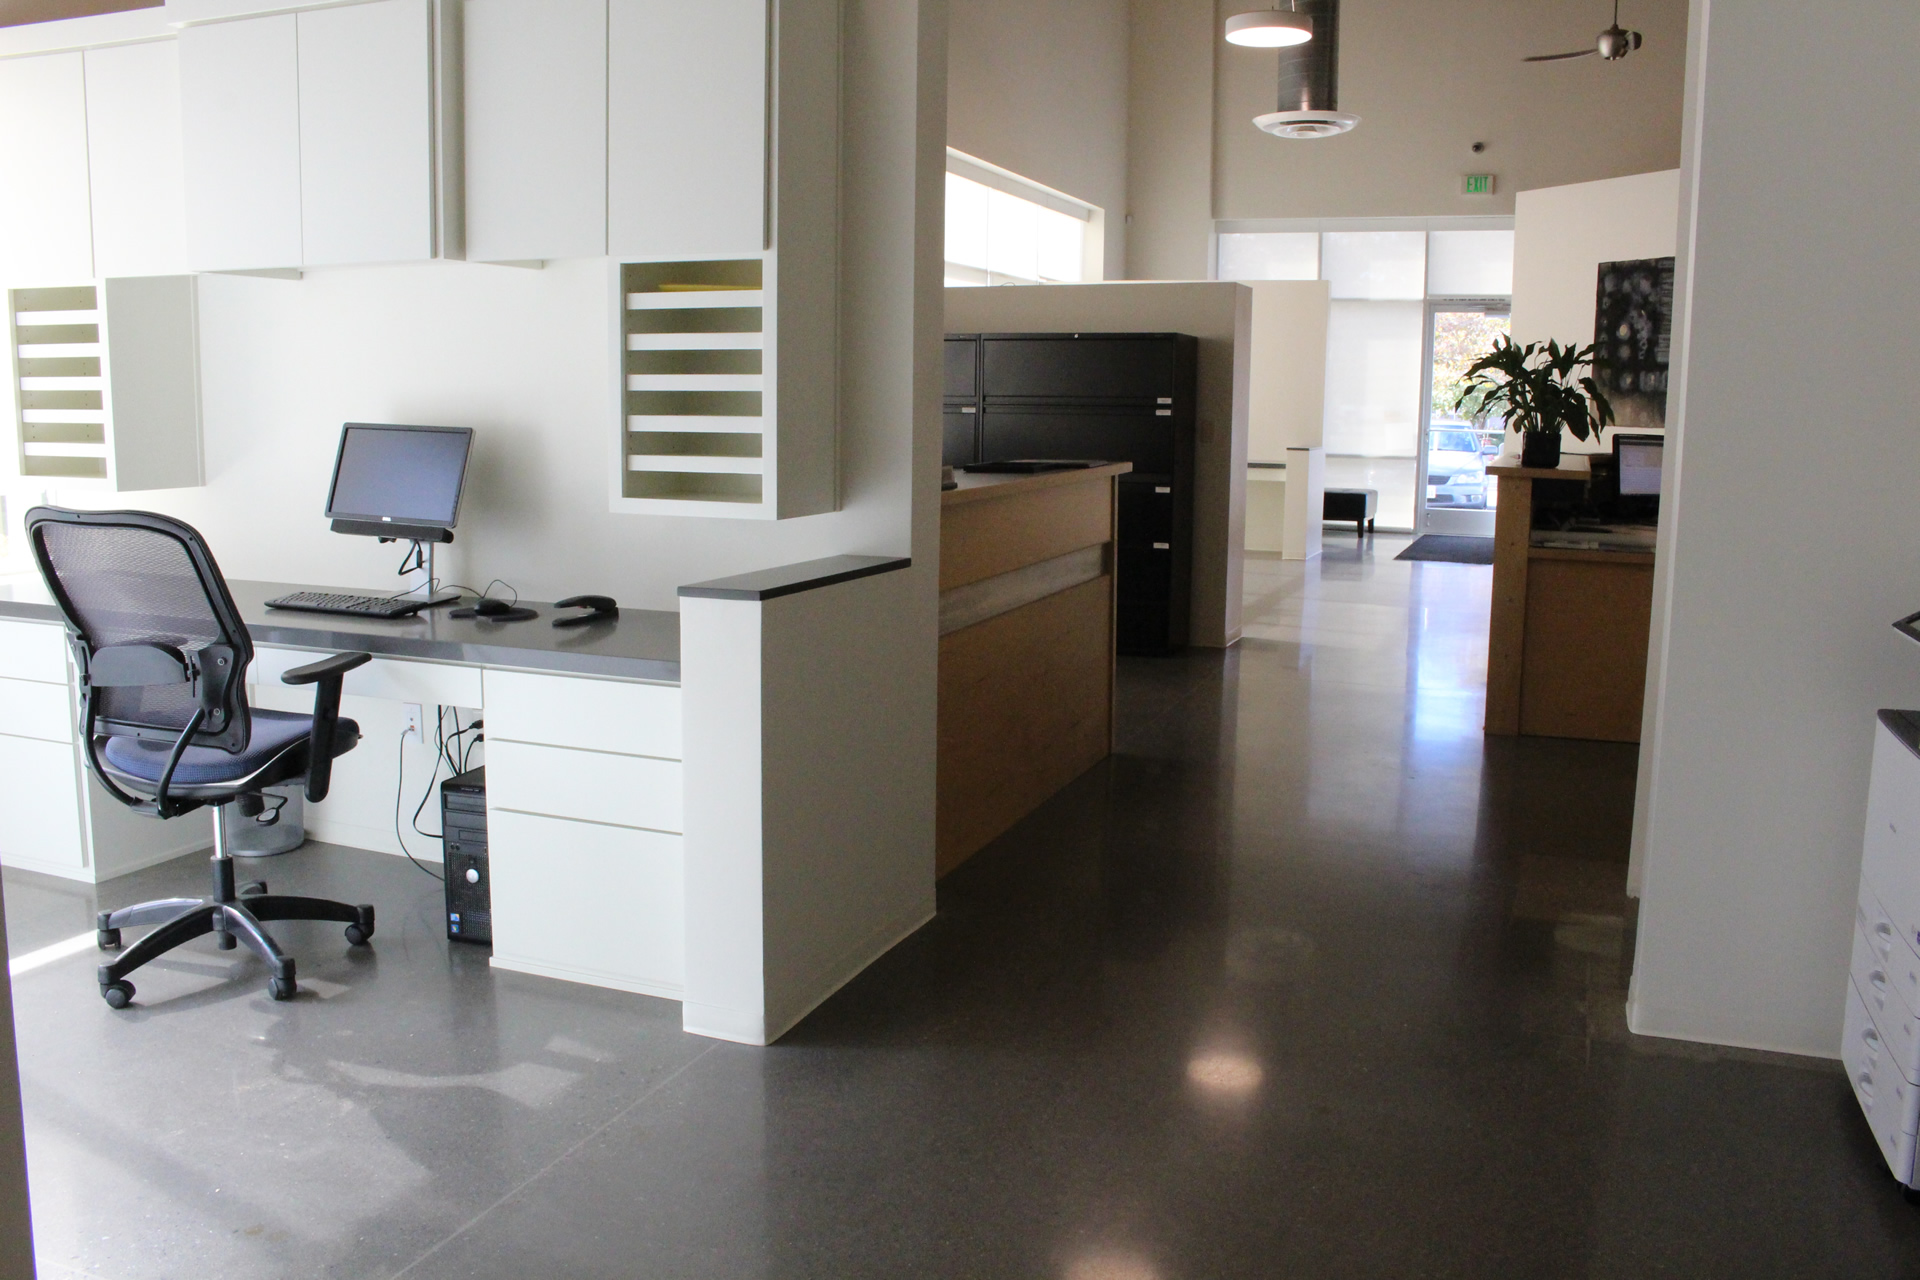 Polished Concrete Flooring By Bac At An Office Polished